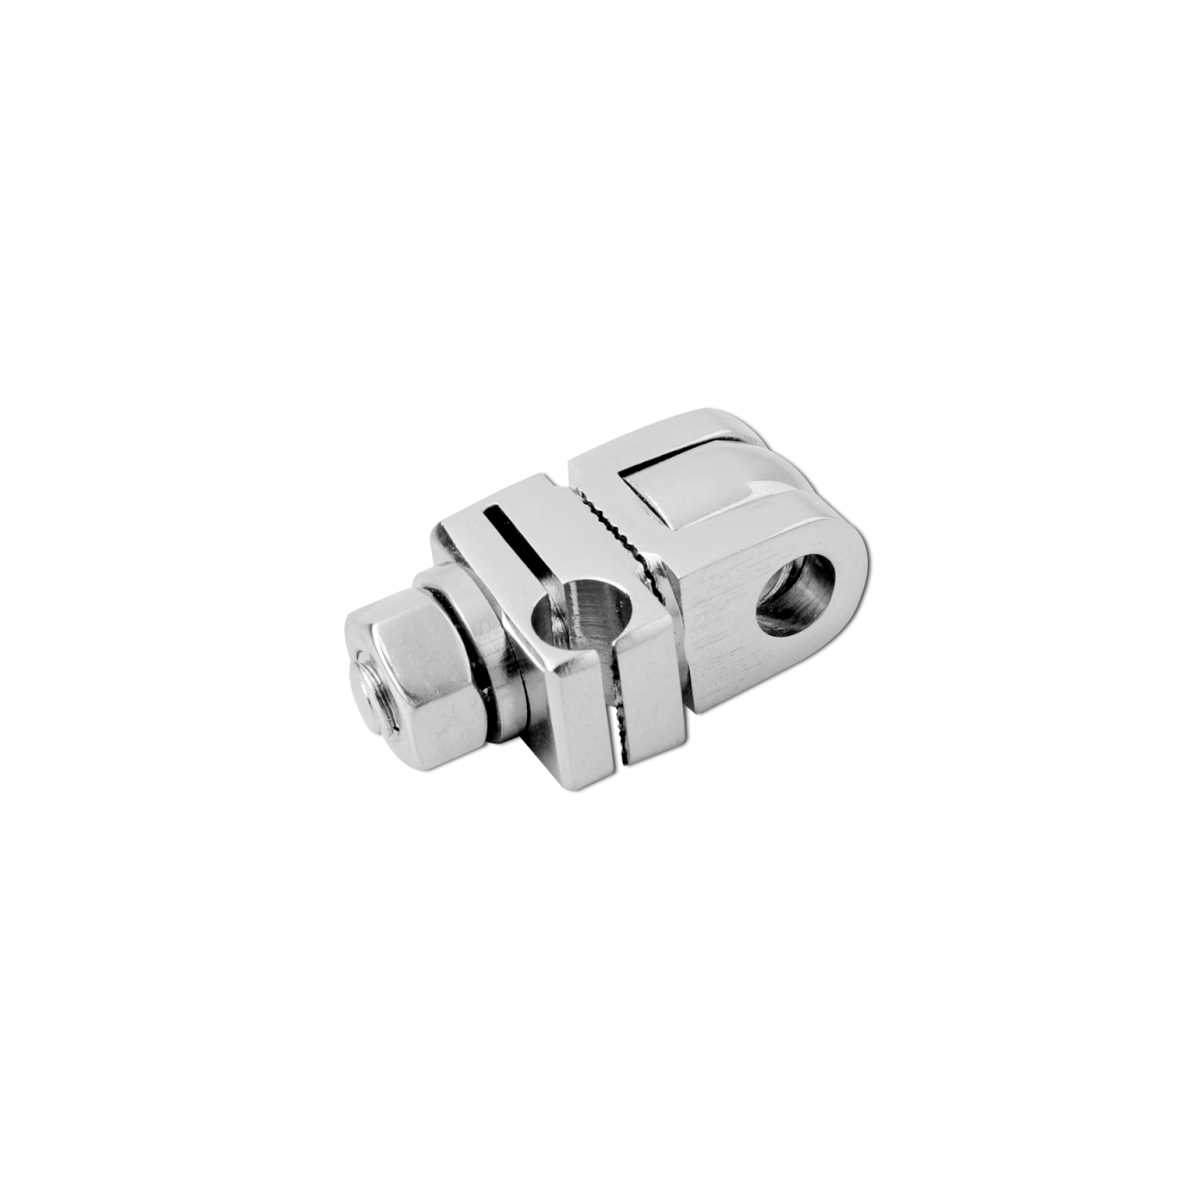 Small Connection Clamp 4.0mm x 4.0mm